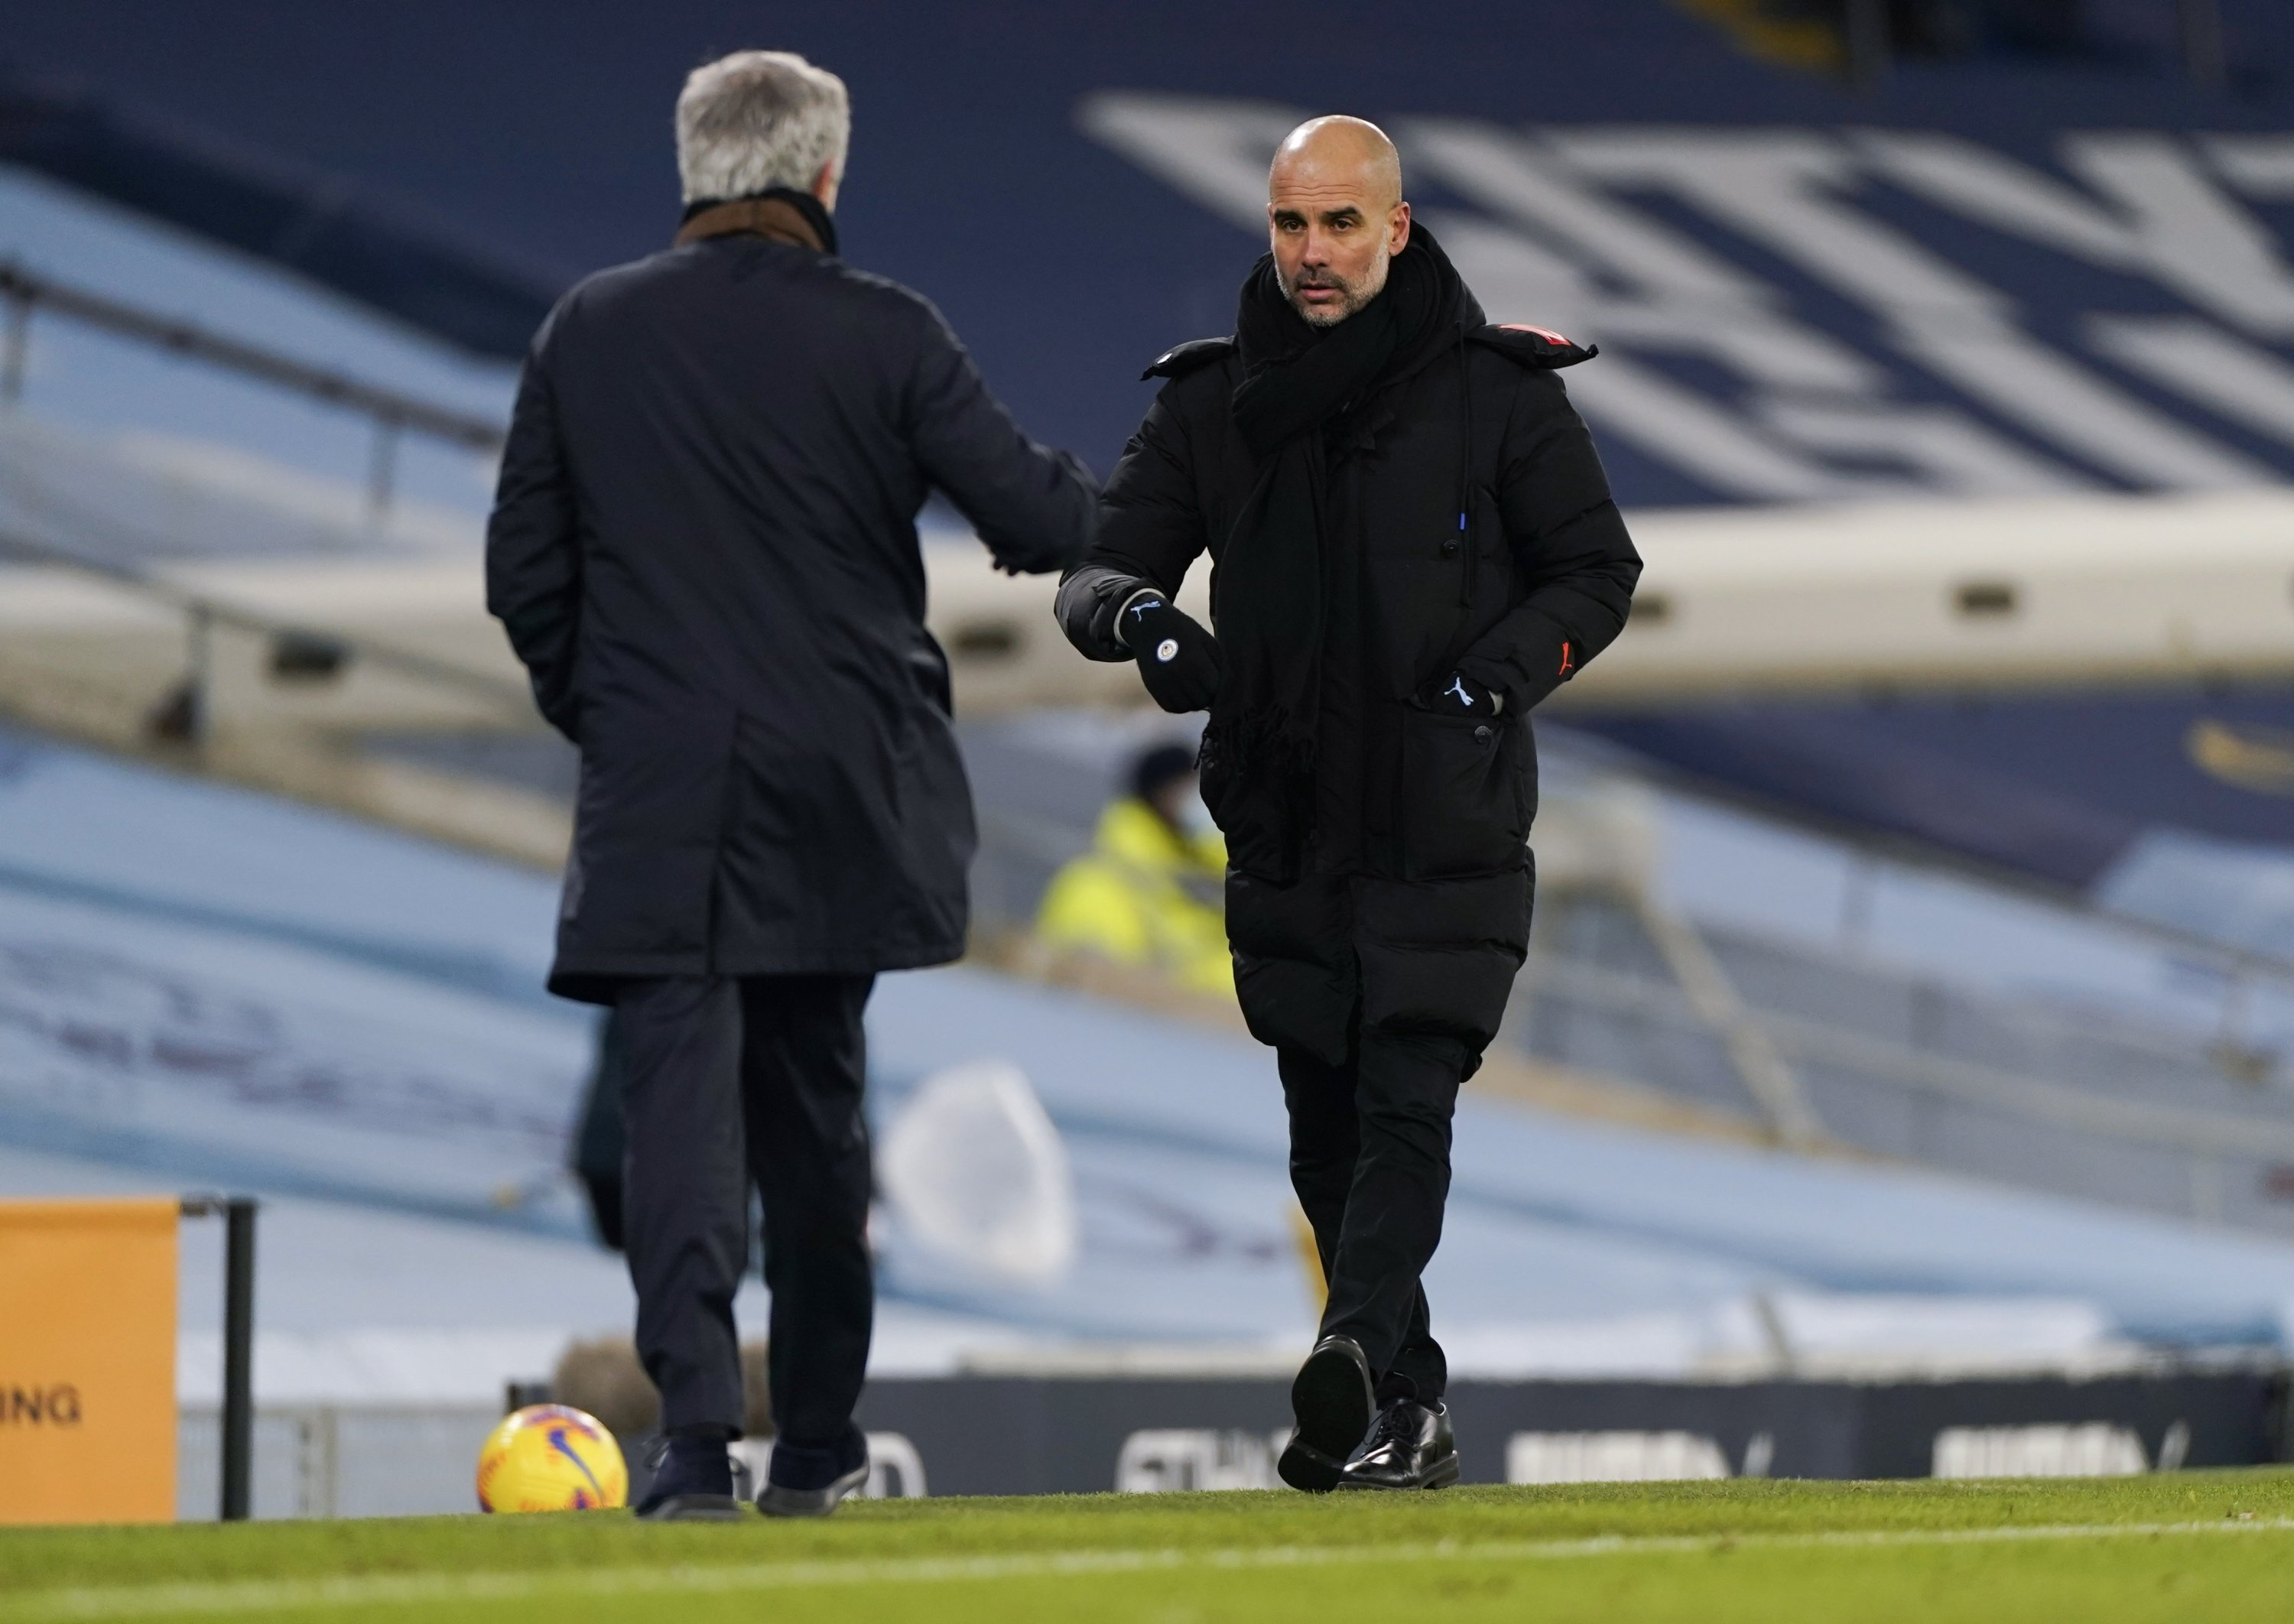 Pep Guardiola (R), manager of Manchester City and Jose Mourinho (L), manager of Tottenham congratulate each other at the end of the English Premier League soccer match between Manchester City and Tottenham Hotspur in Manchester, Britain, Feb. 13, 2021. (EPA Photo)